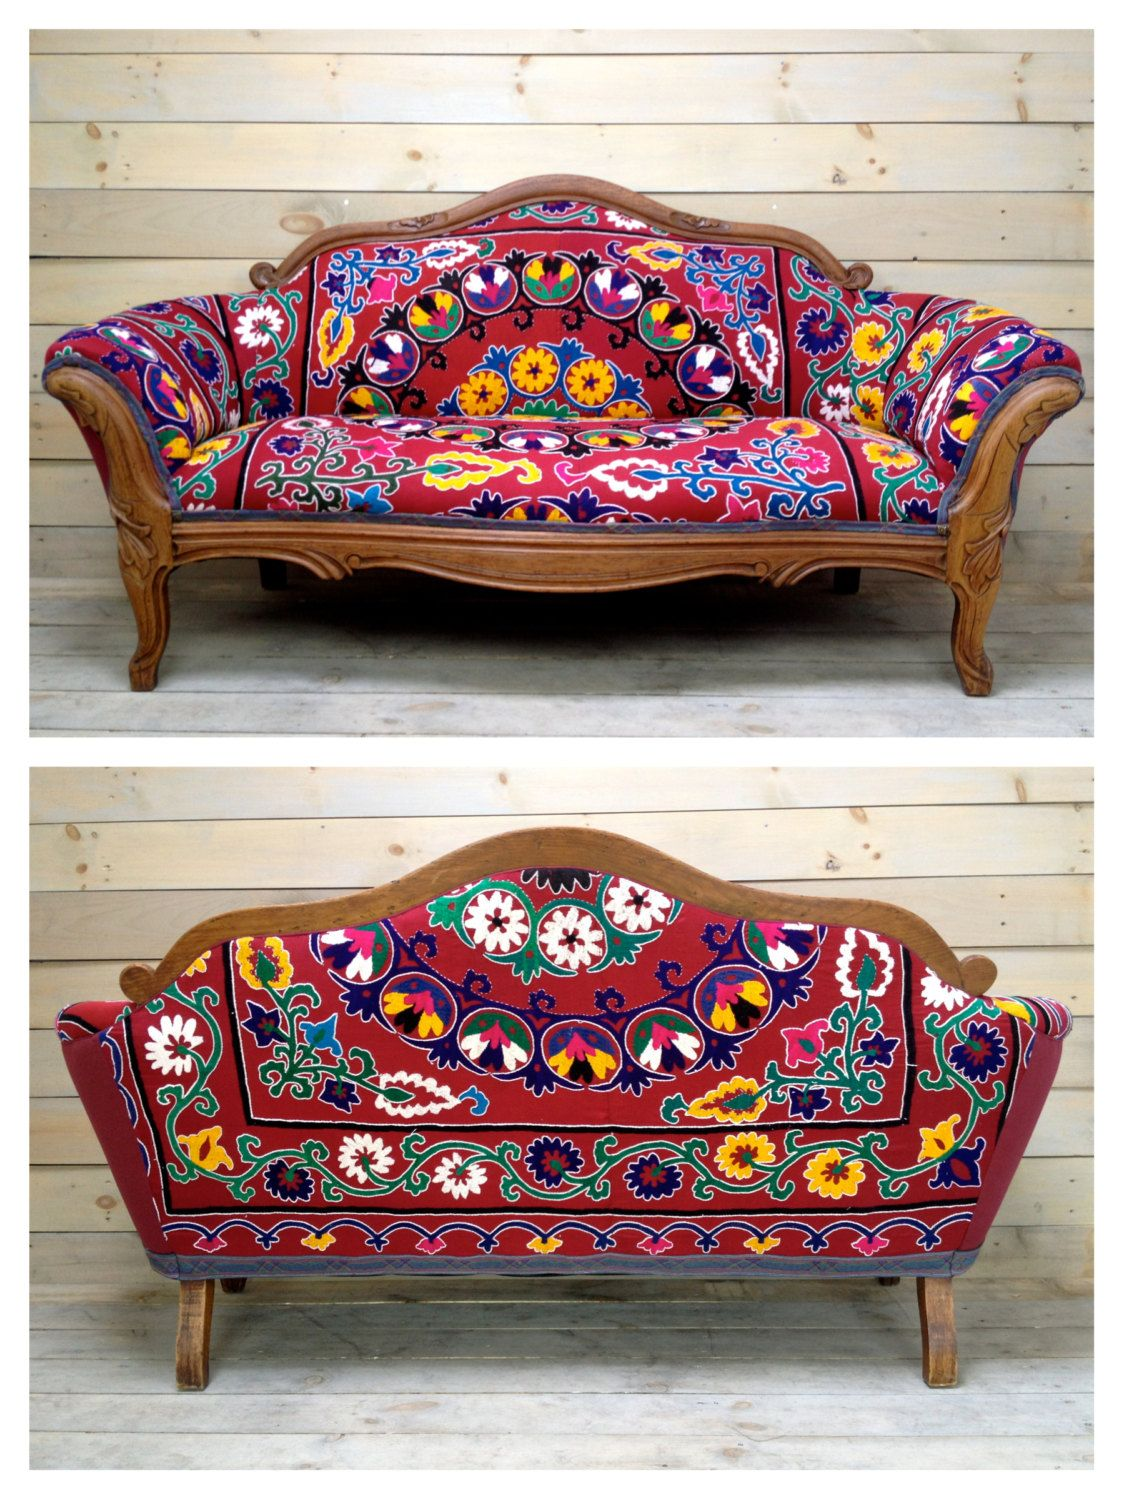 Bohemian Sofa Bed Craigslist Leather Mn Vintage Carved Settee Reupholstered With Antique Red